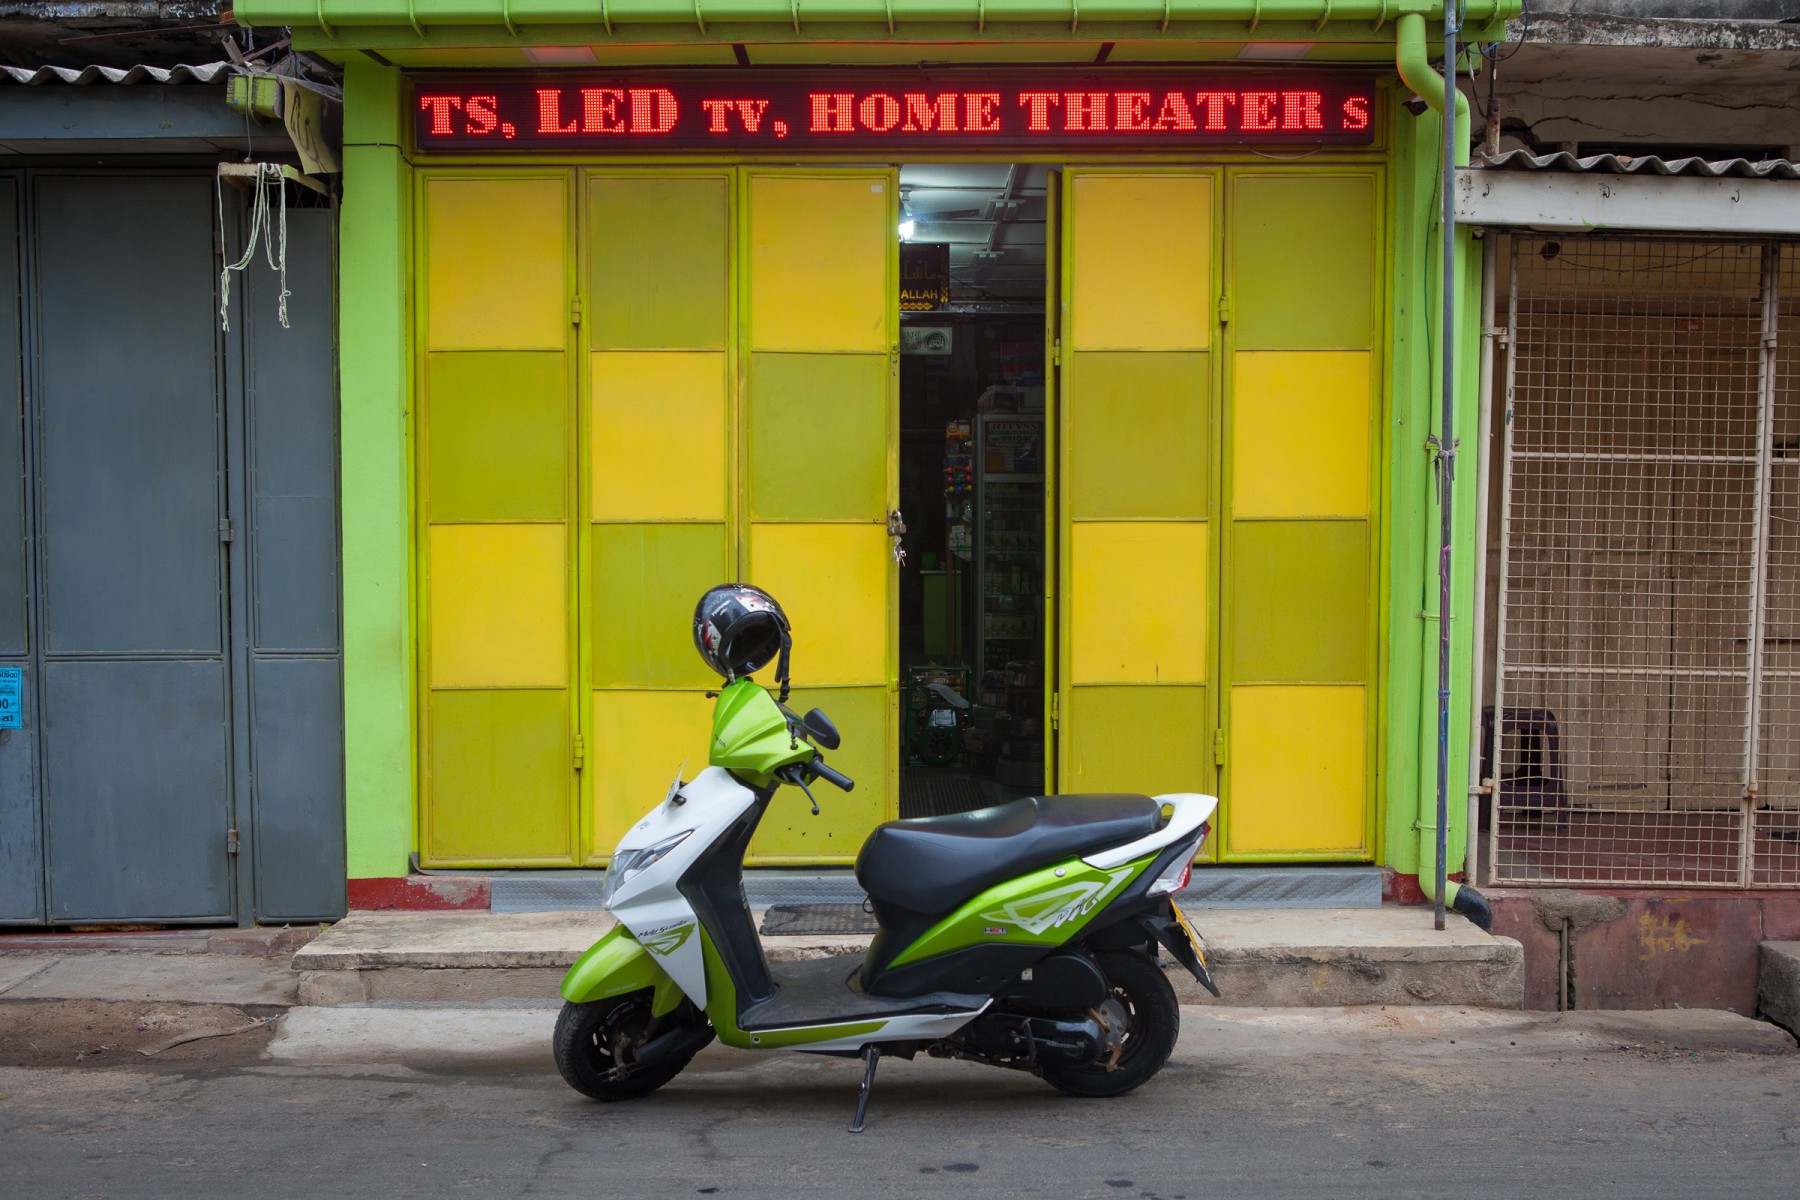 Colour coordinated scooter and shopfront in Puttallam on the west coast of Sri Lanka.